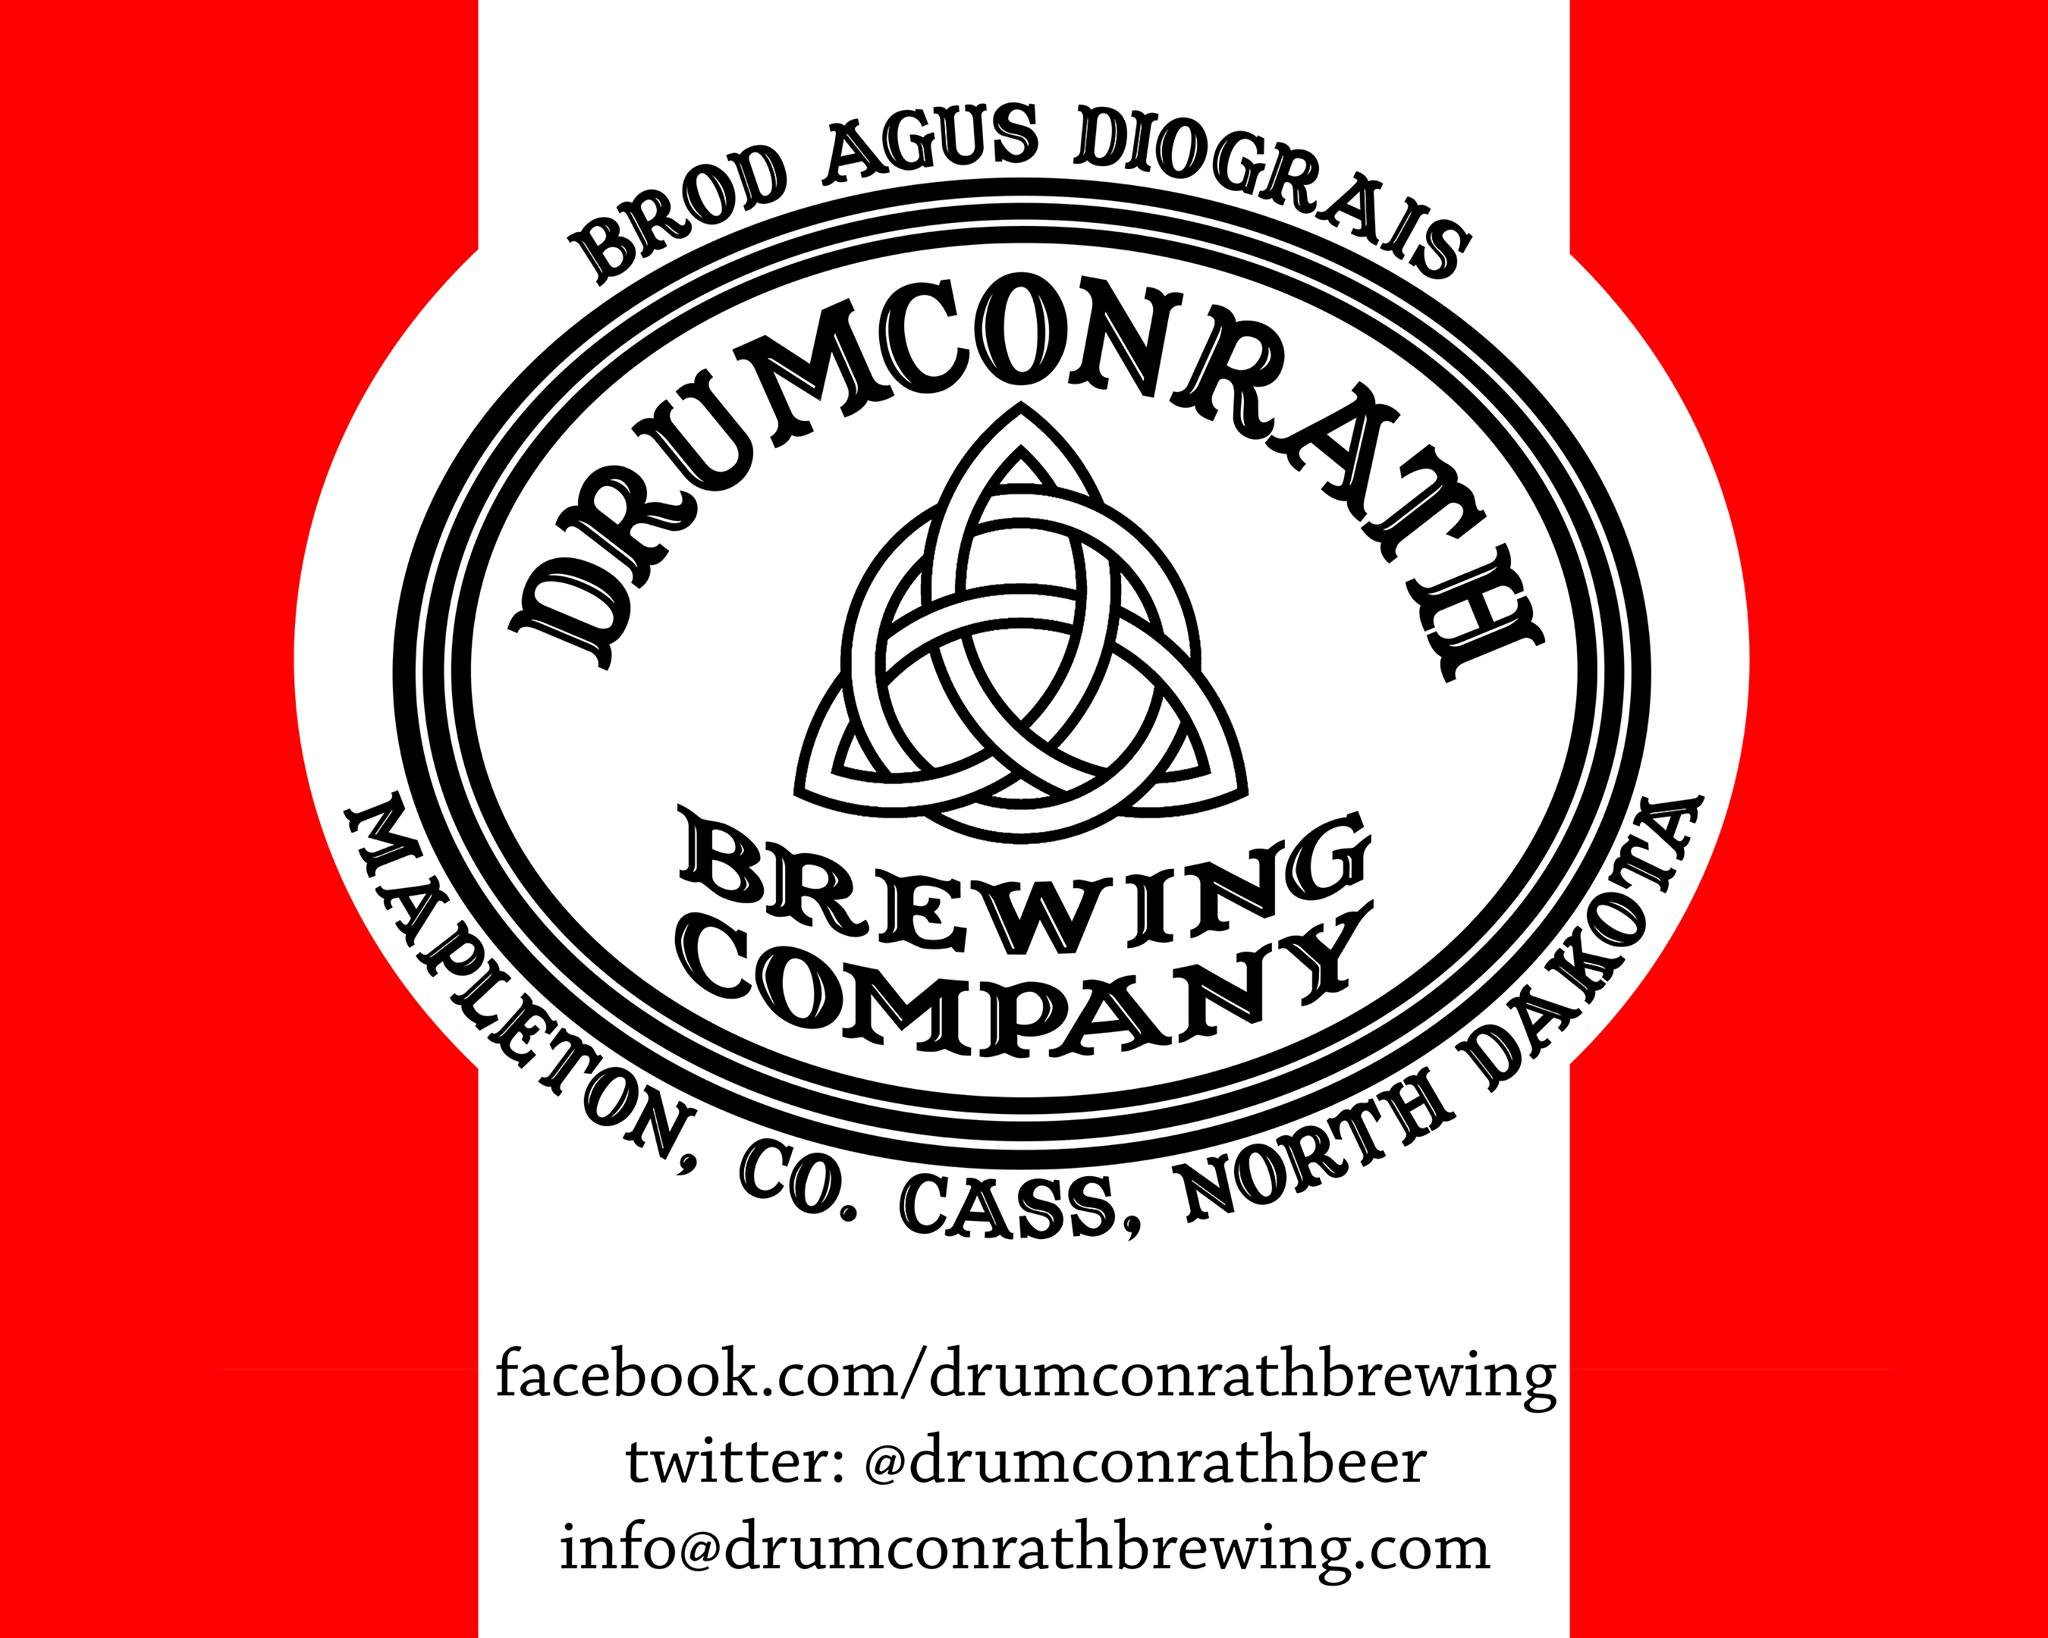 Drumconrath Brewing Company